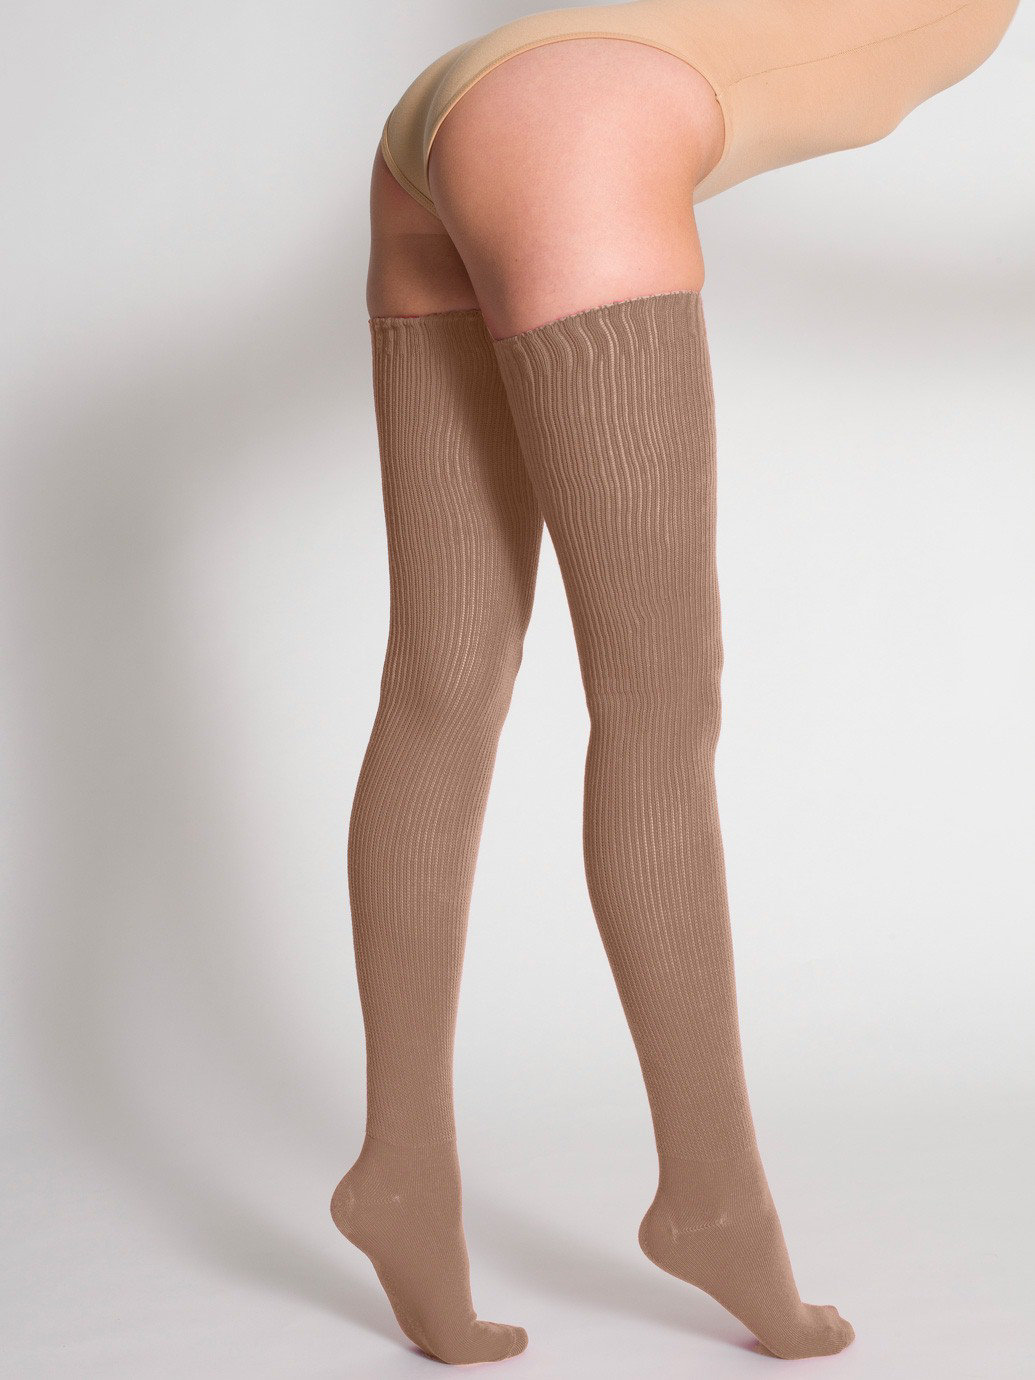 Find the best selection of cheap thigh high socks in bulk here at 440v.cf Including thigh high blue boots and white thigh highs red bows at wholesale prices from thigh high socks manufacturers. Source discount and high quality products in hundreds of categories wholesale direct from China.